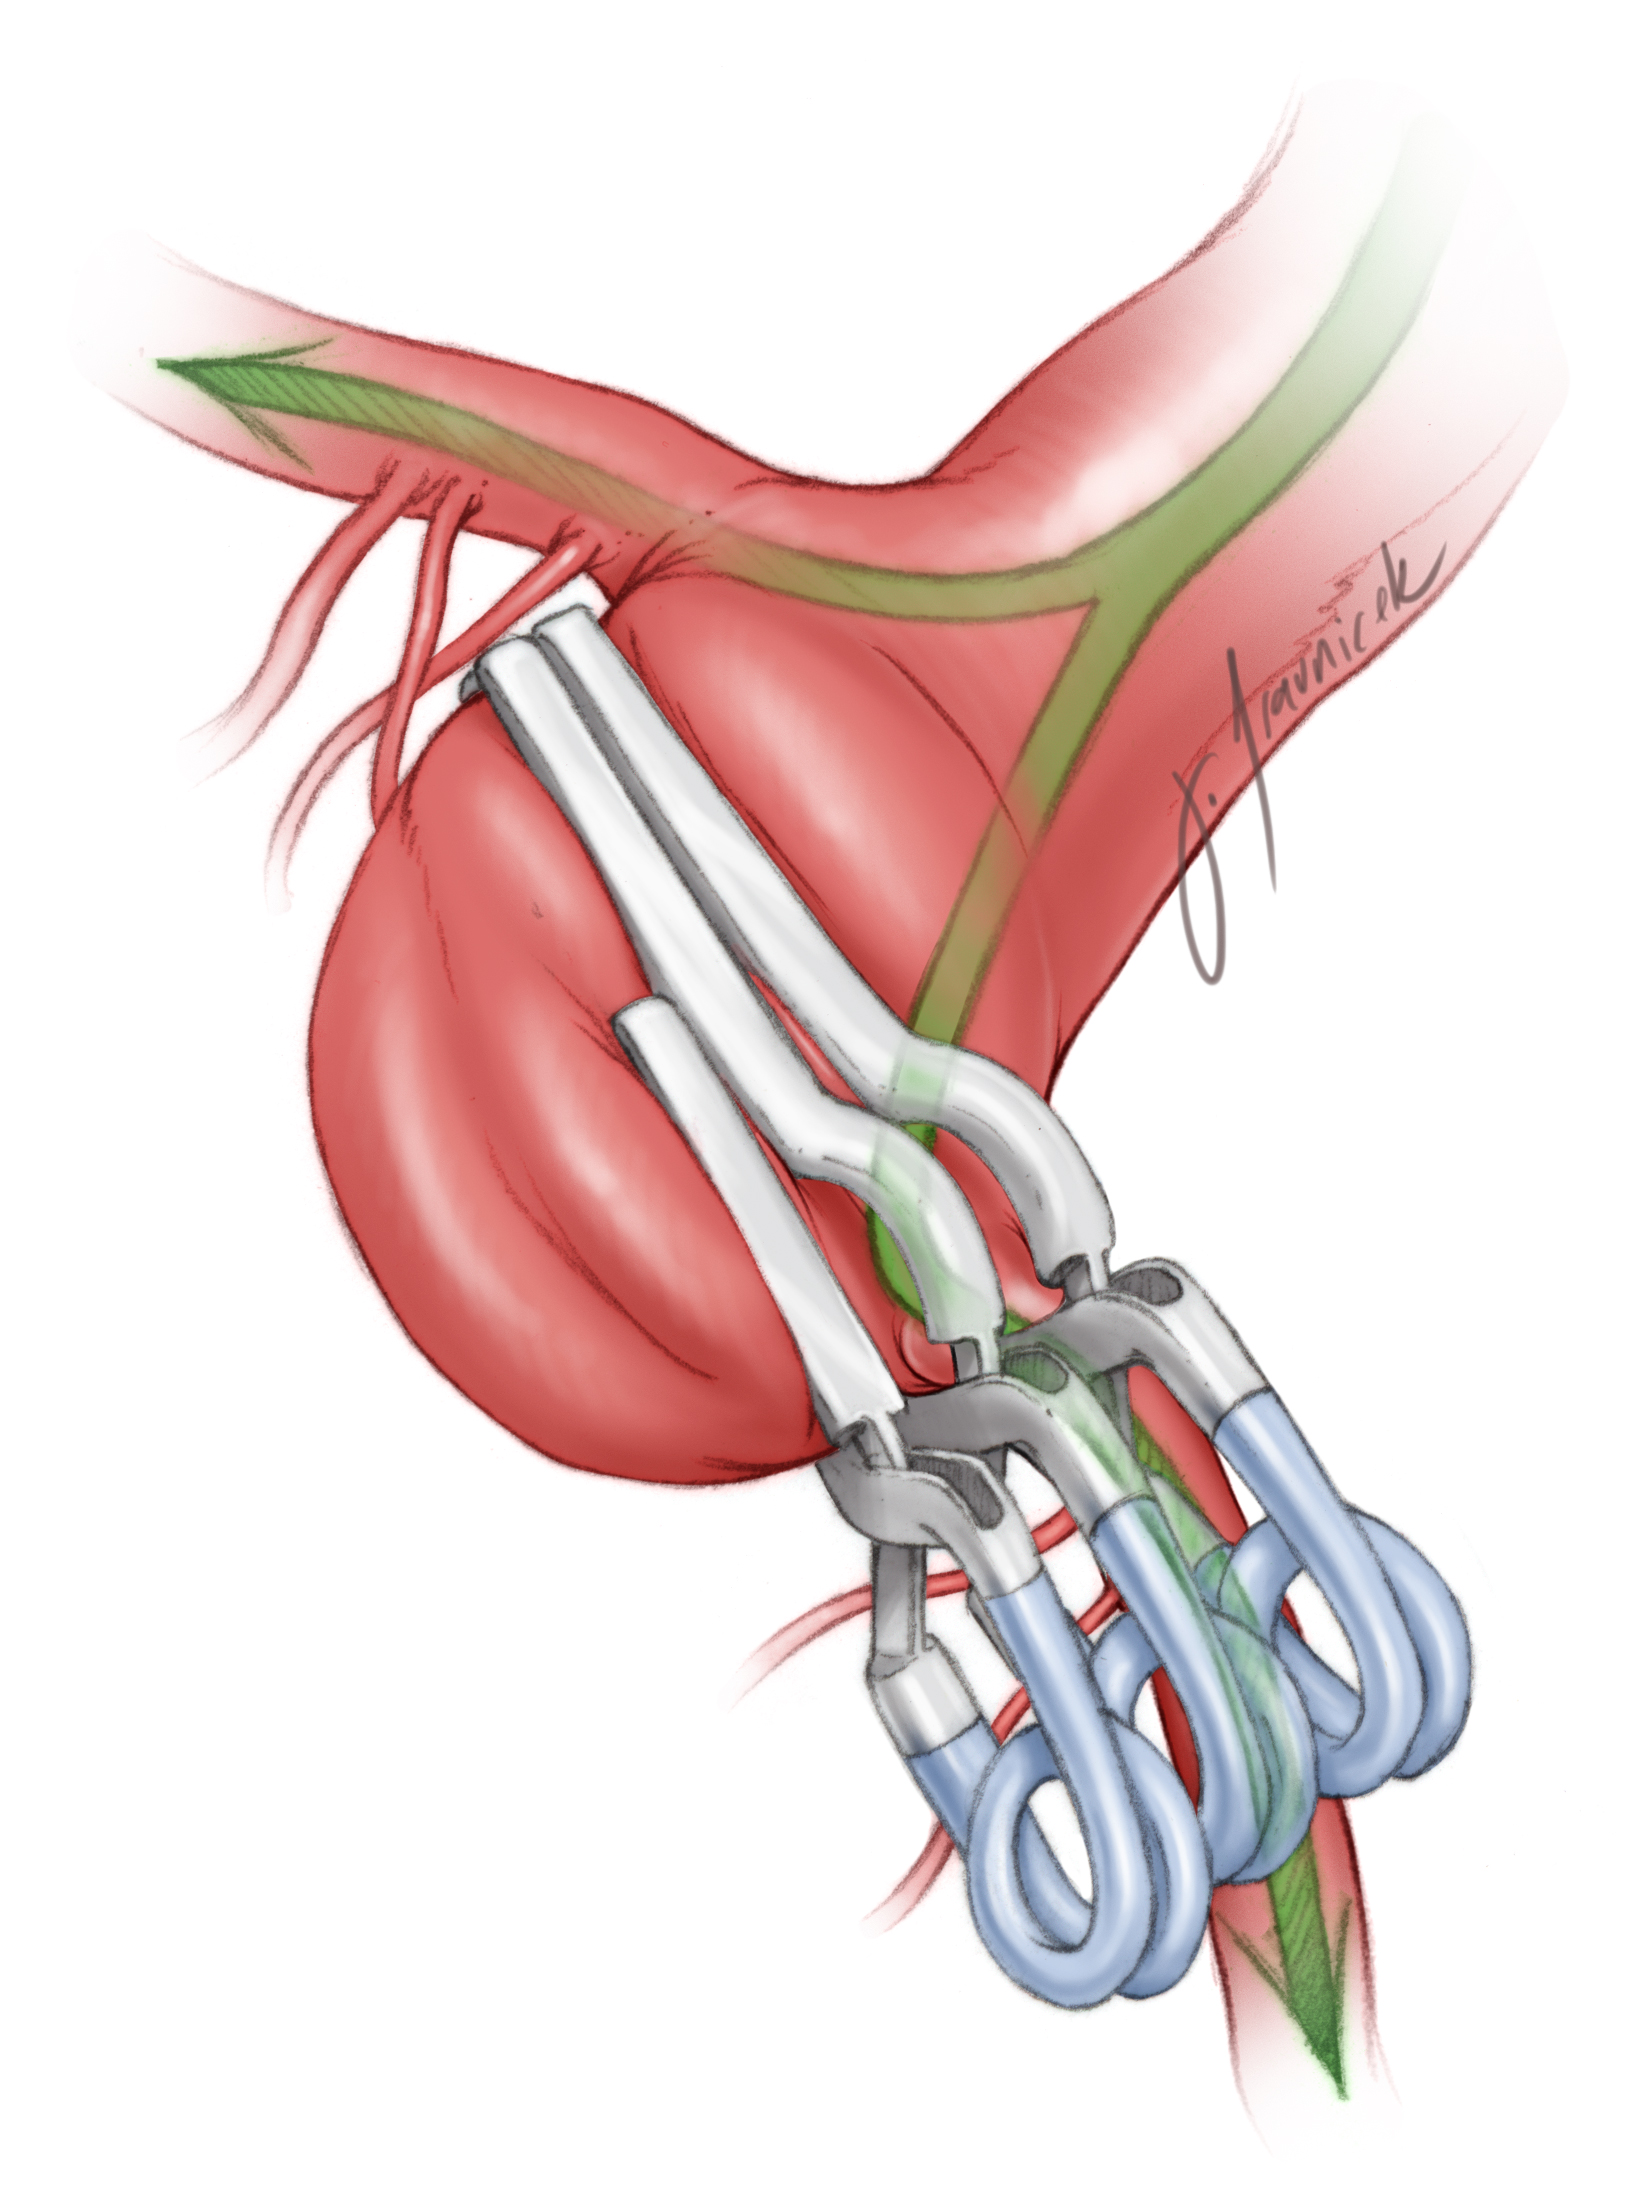 Figure 18: A basilar artery aneurysm is clipped with a tandem overstacking method to allow for retrograde flow into the efferent P1 segment of the PCA. The blood flow is indicated with the green arrows. The aneurysm is first clipped using a fenestrated clip on its proximal neck. A second fenestrated clip is placed just distal to the first one, creating a lumen for blood flow. Finally, a simple clip is placed just distal the second fenestrated clip, rerouting the flow into the efferent P1 segment rather than the dome.